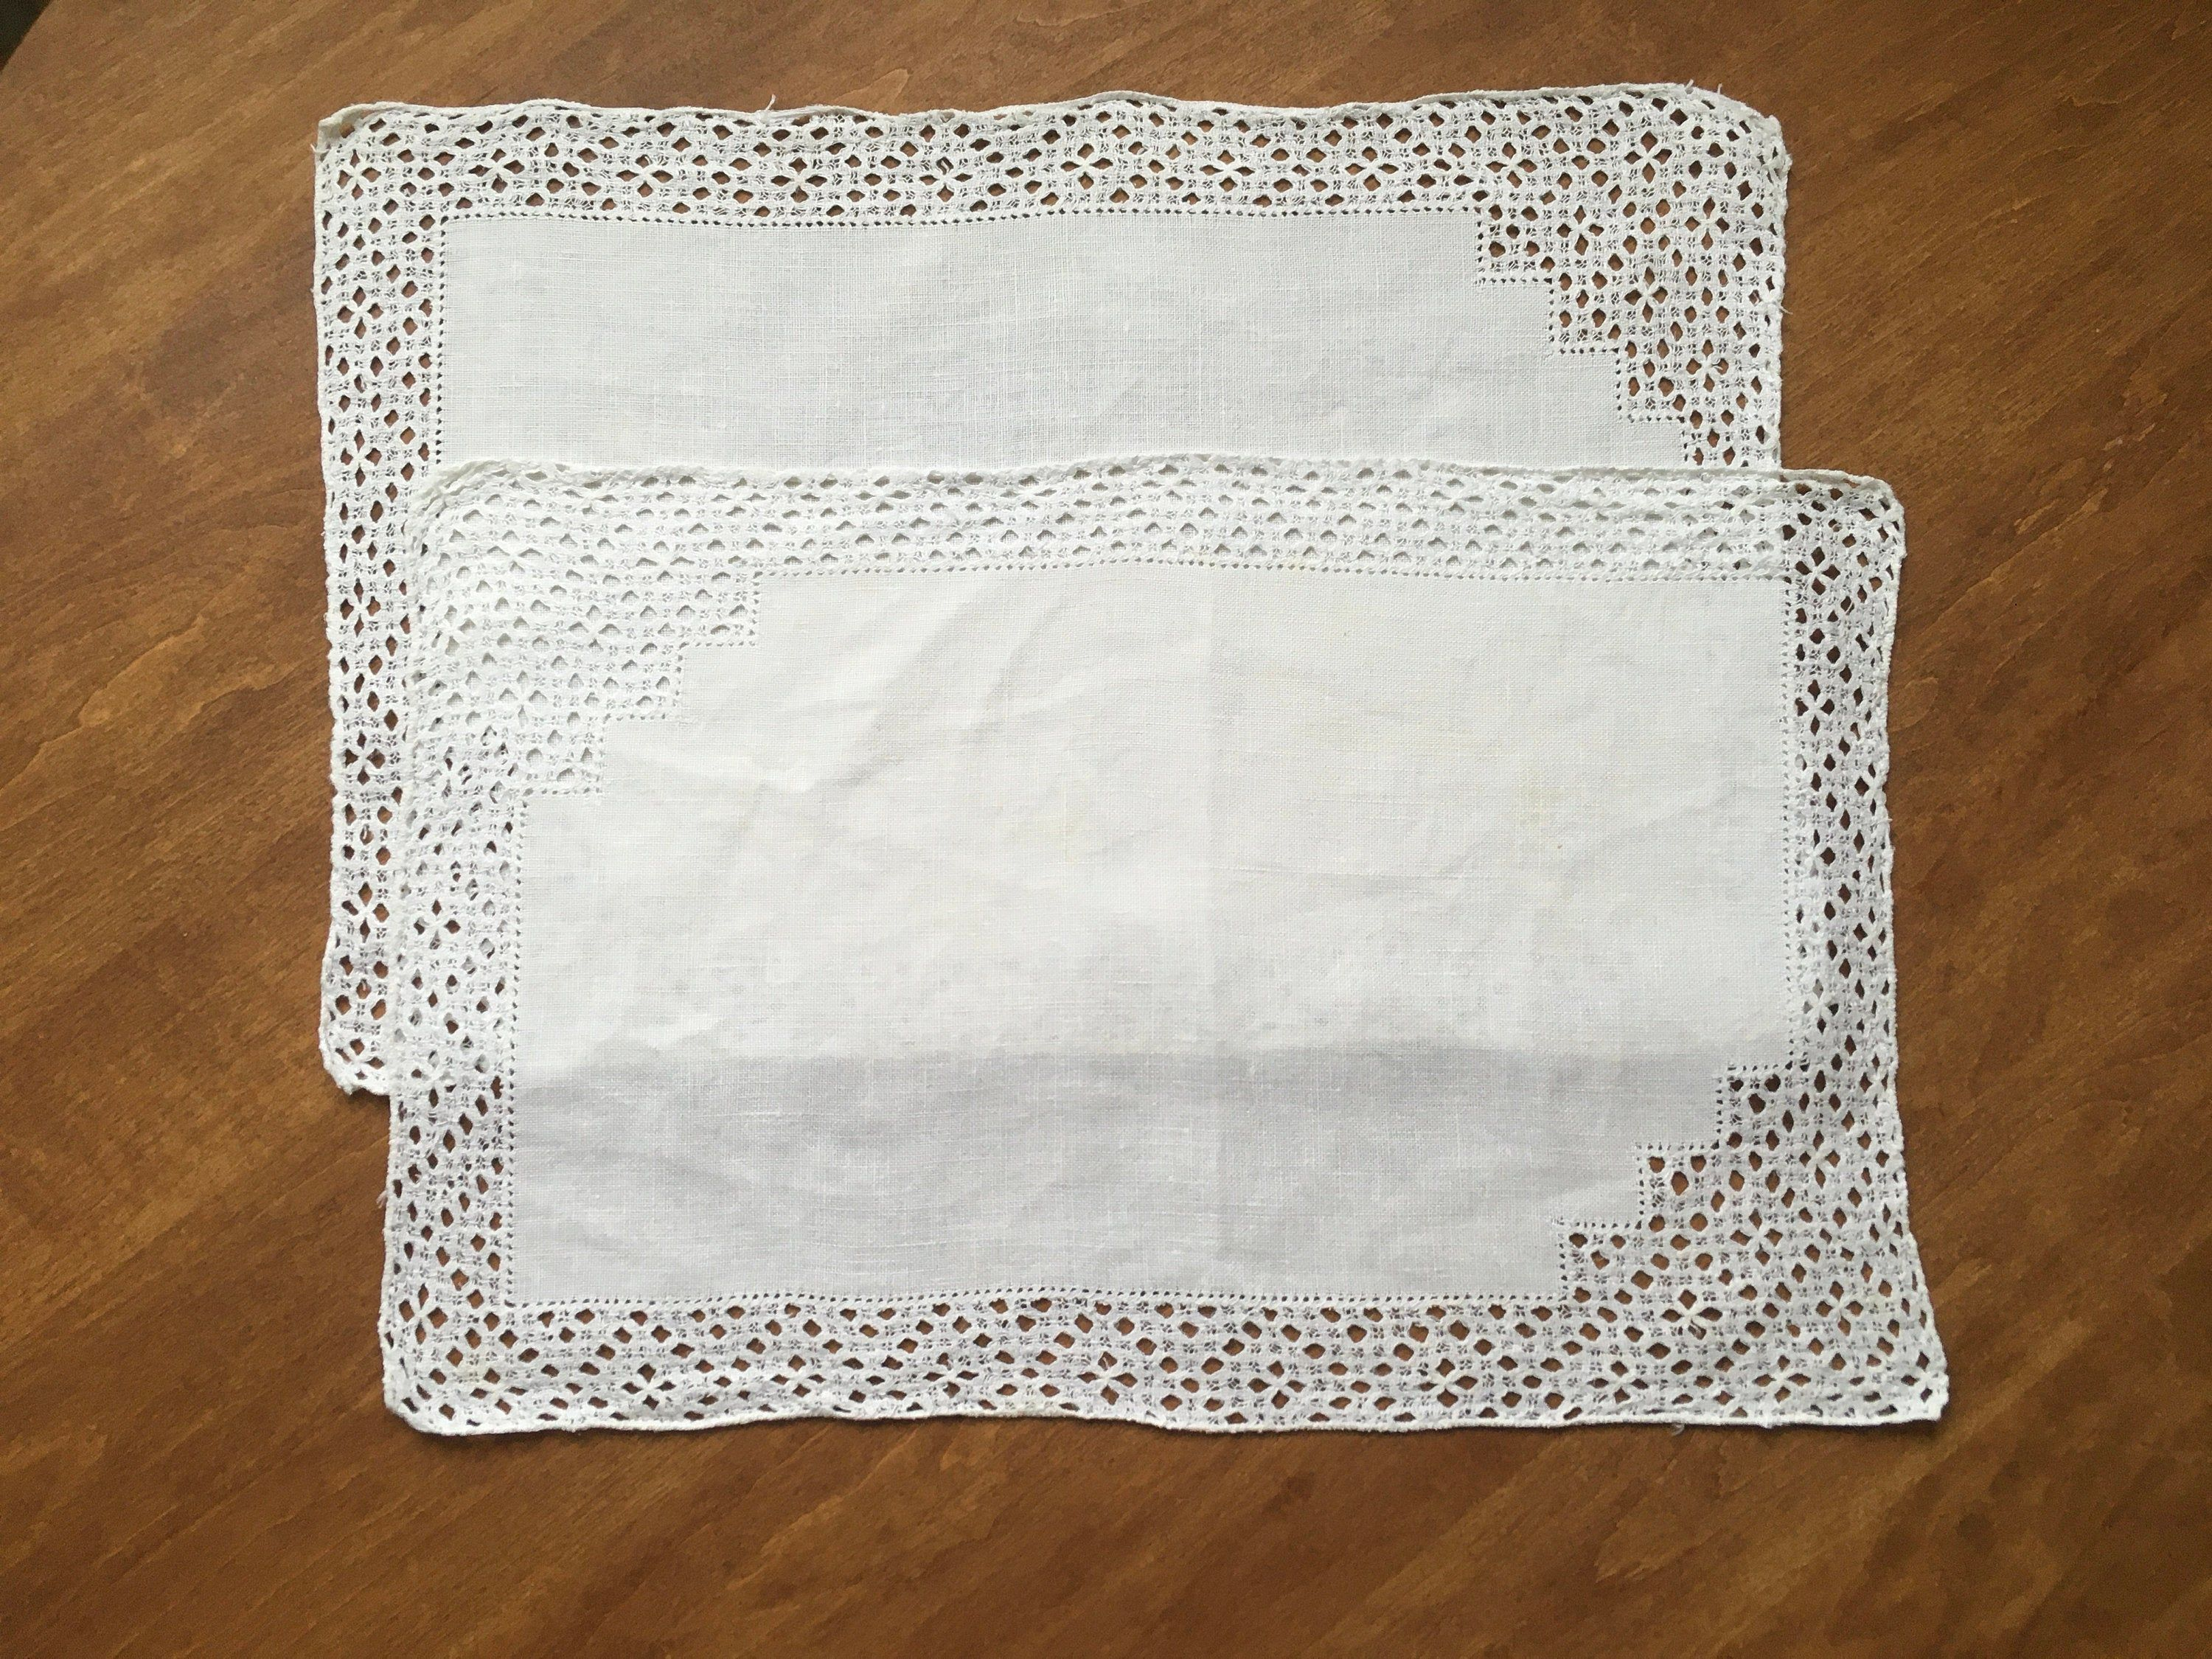 80s Placemat or Table Mat White on White Embroidered Design Lace Edging Vintage 80s Table Setting